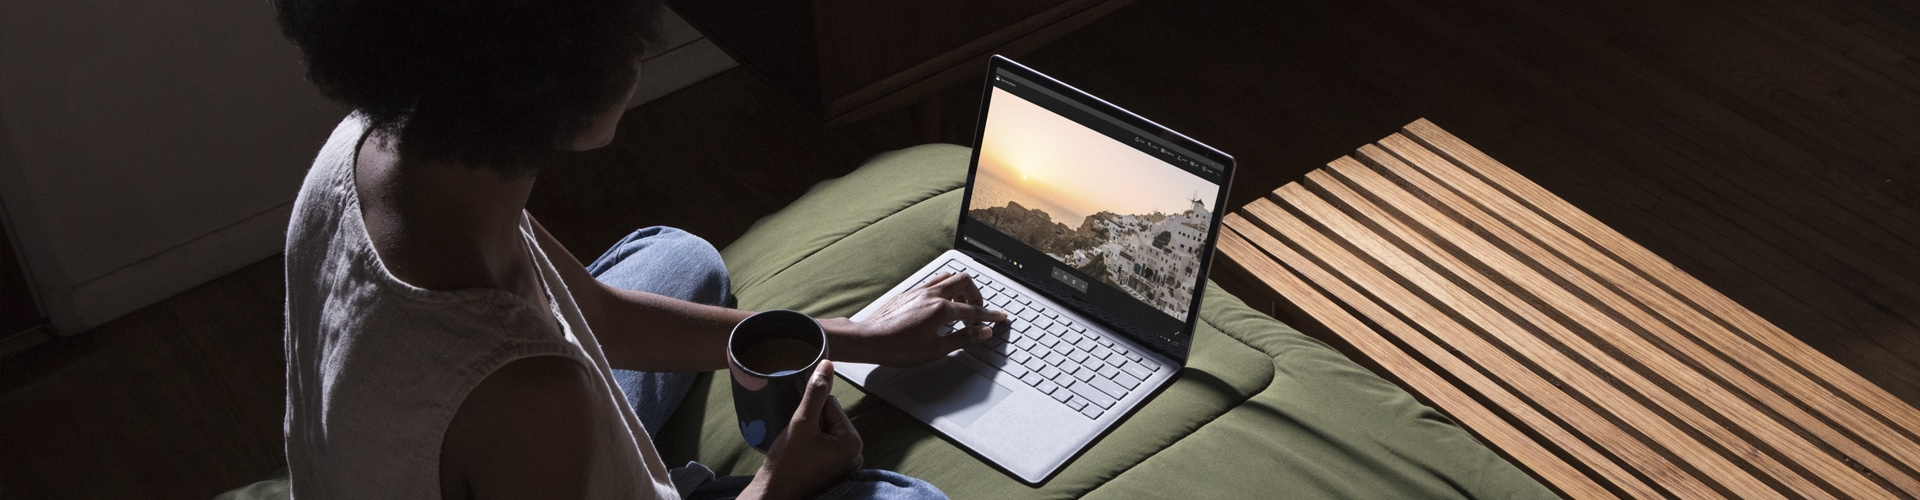 Photograph of person sitting cross-legged on a bed drinking something from a mug and using a laptop